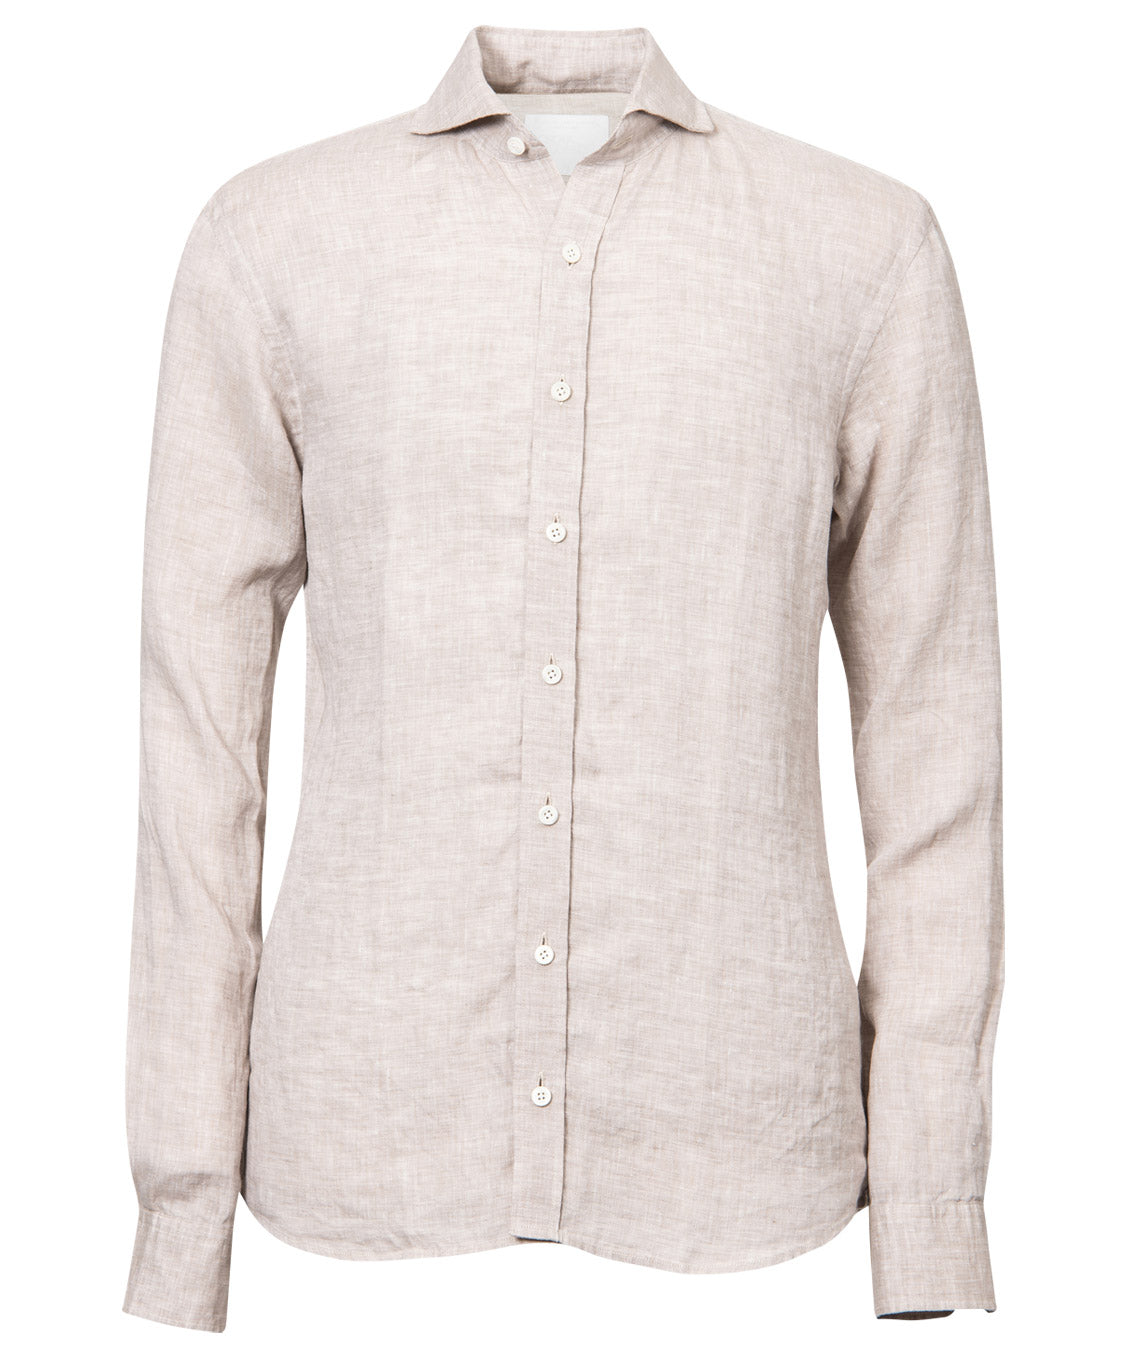 Herman Natural Washed Effect Sport Shirt